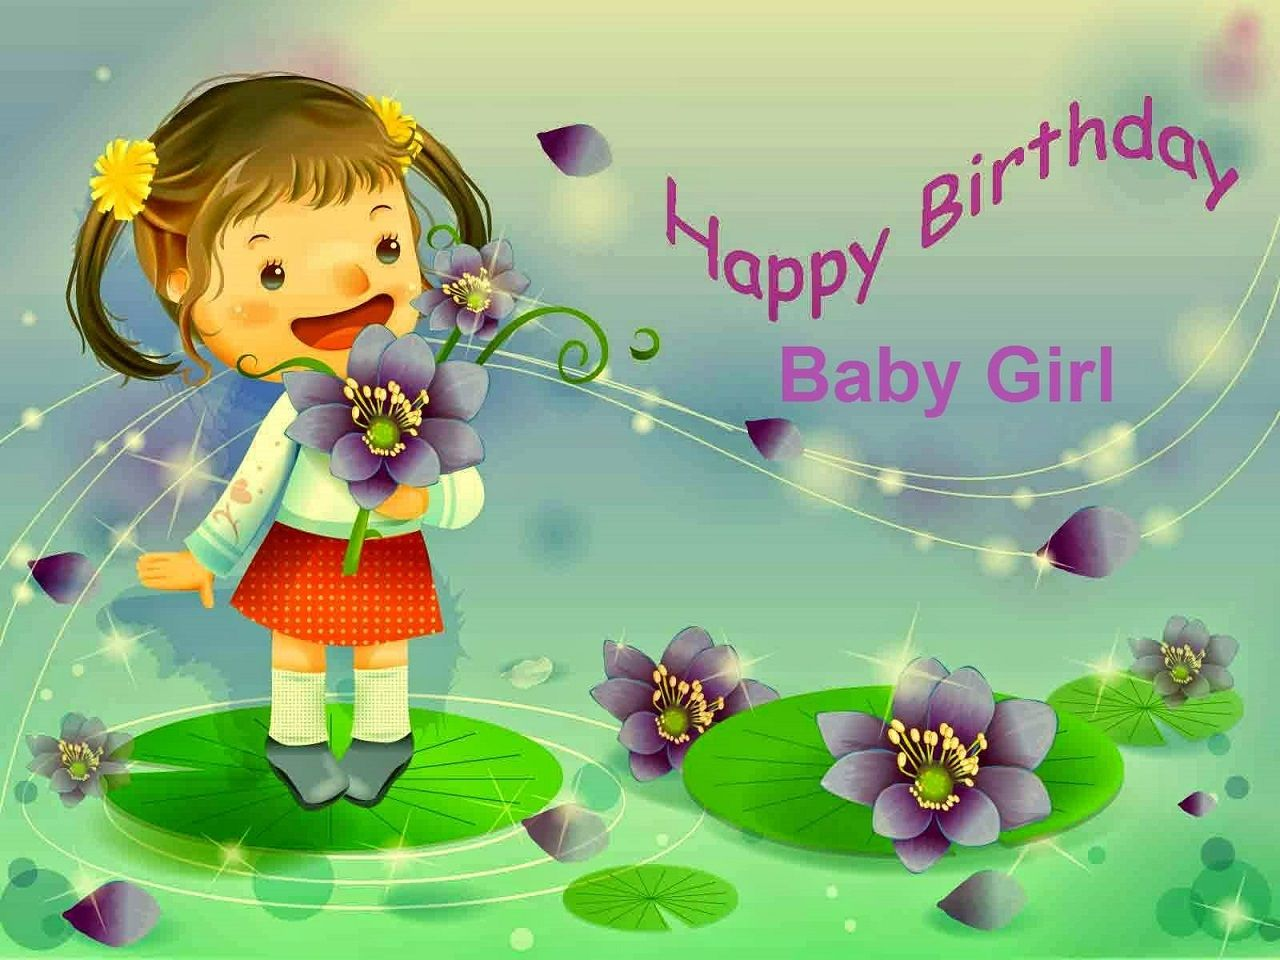 Pin By Allupdatehere On Lovely Birthday Wishes For Baby Girl